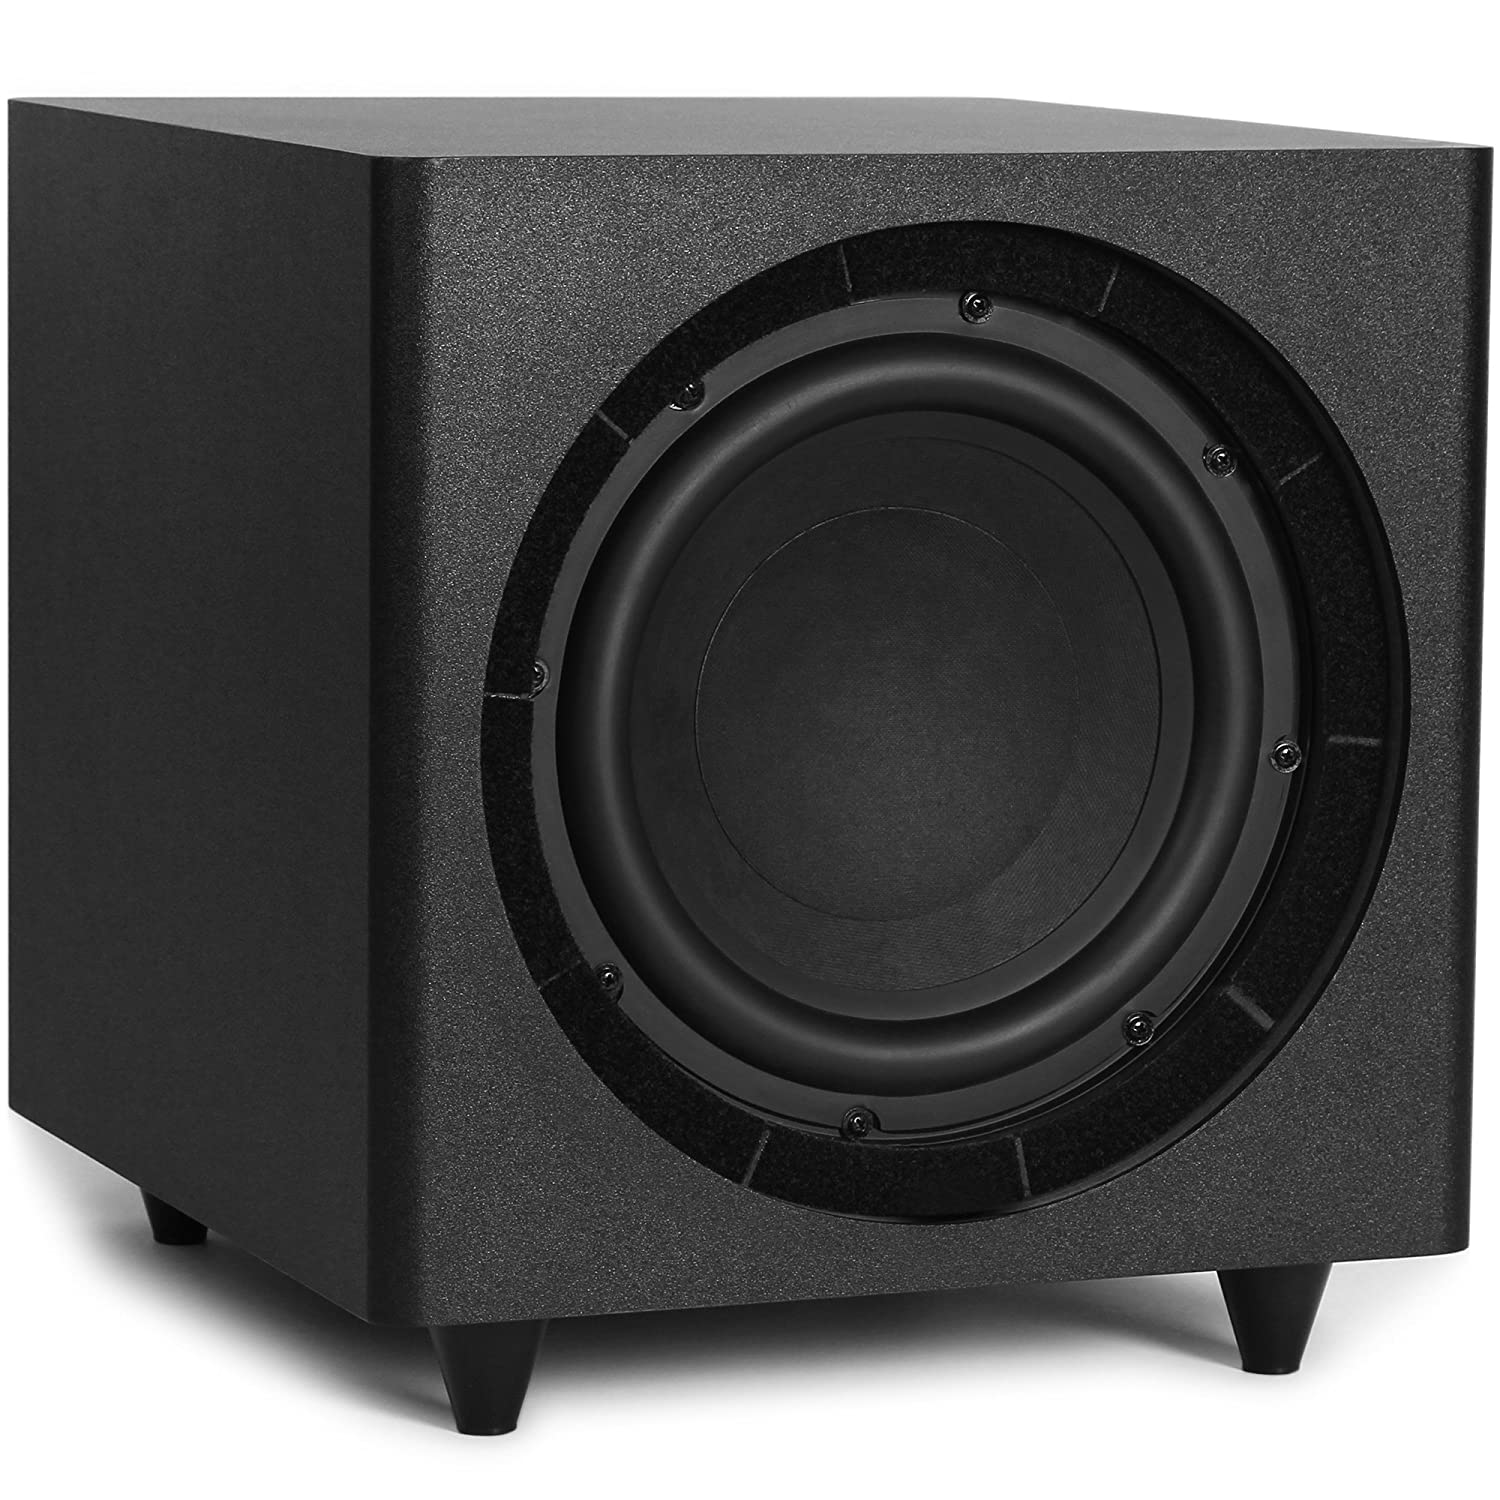 Amazon.com: Micca 10-Inch Powered Subwoofer for Home Theater or Music  (MS10): Electronics